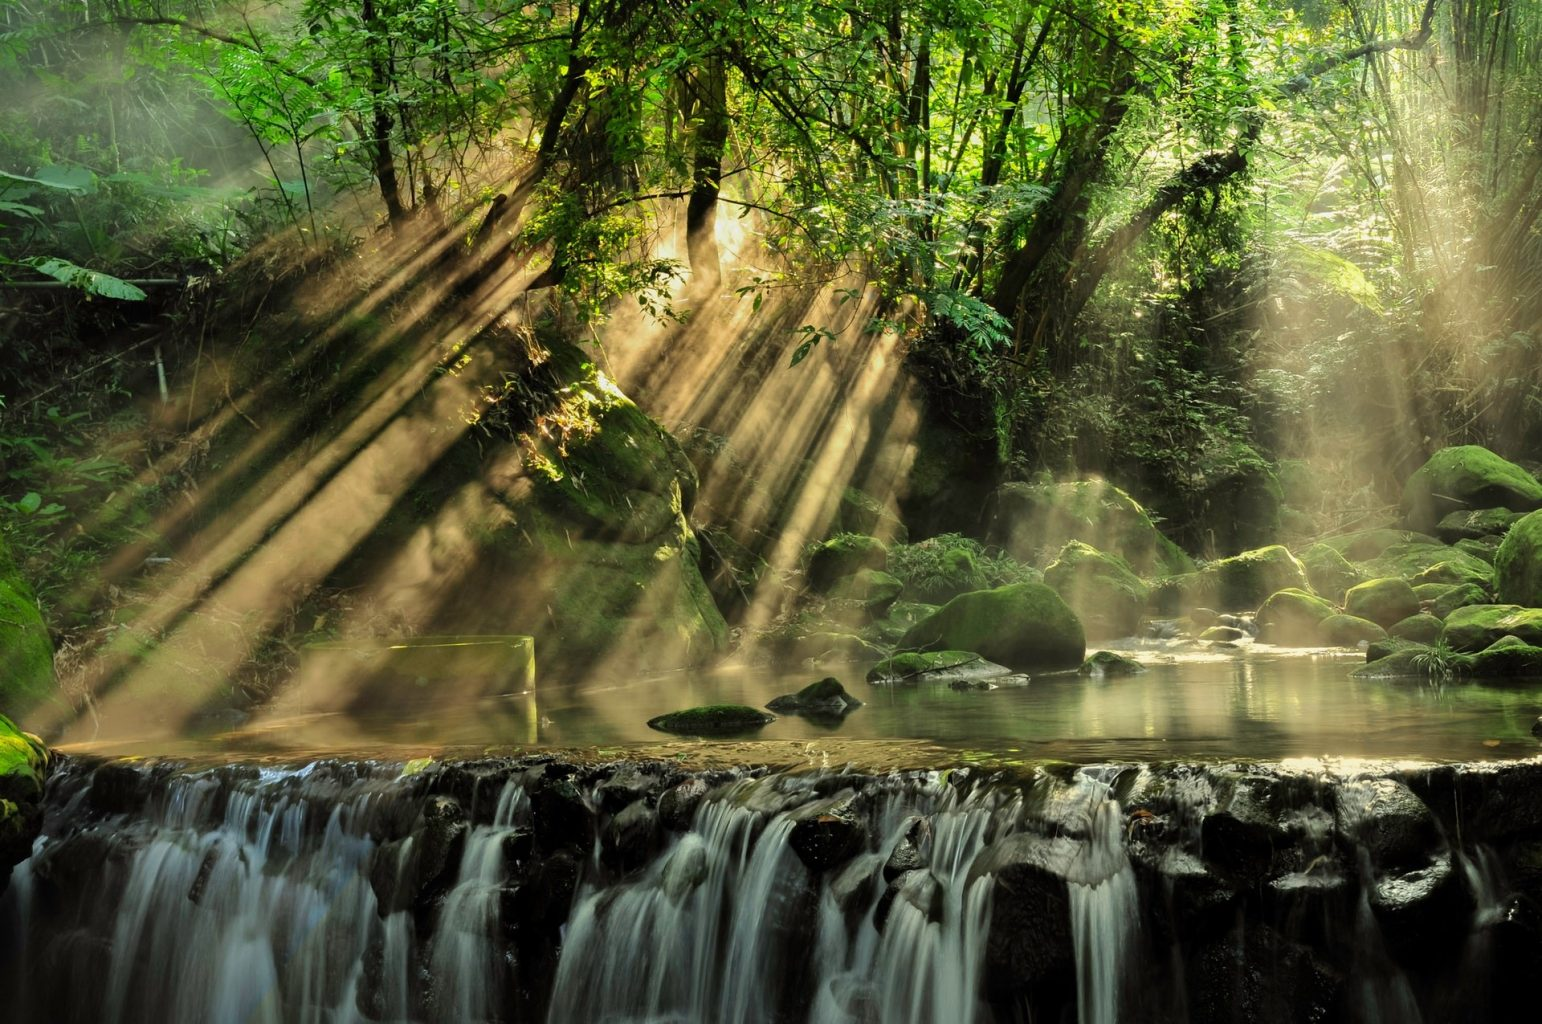 Image: Light streaming through the rainforest canopy to a waterfall